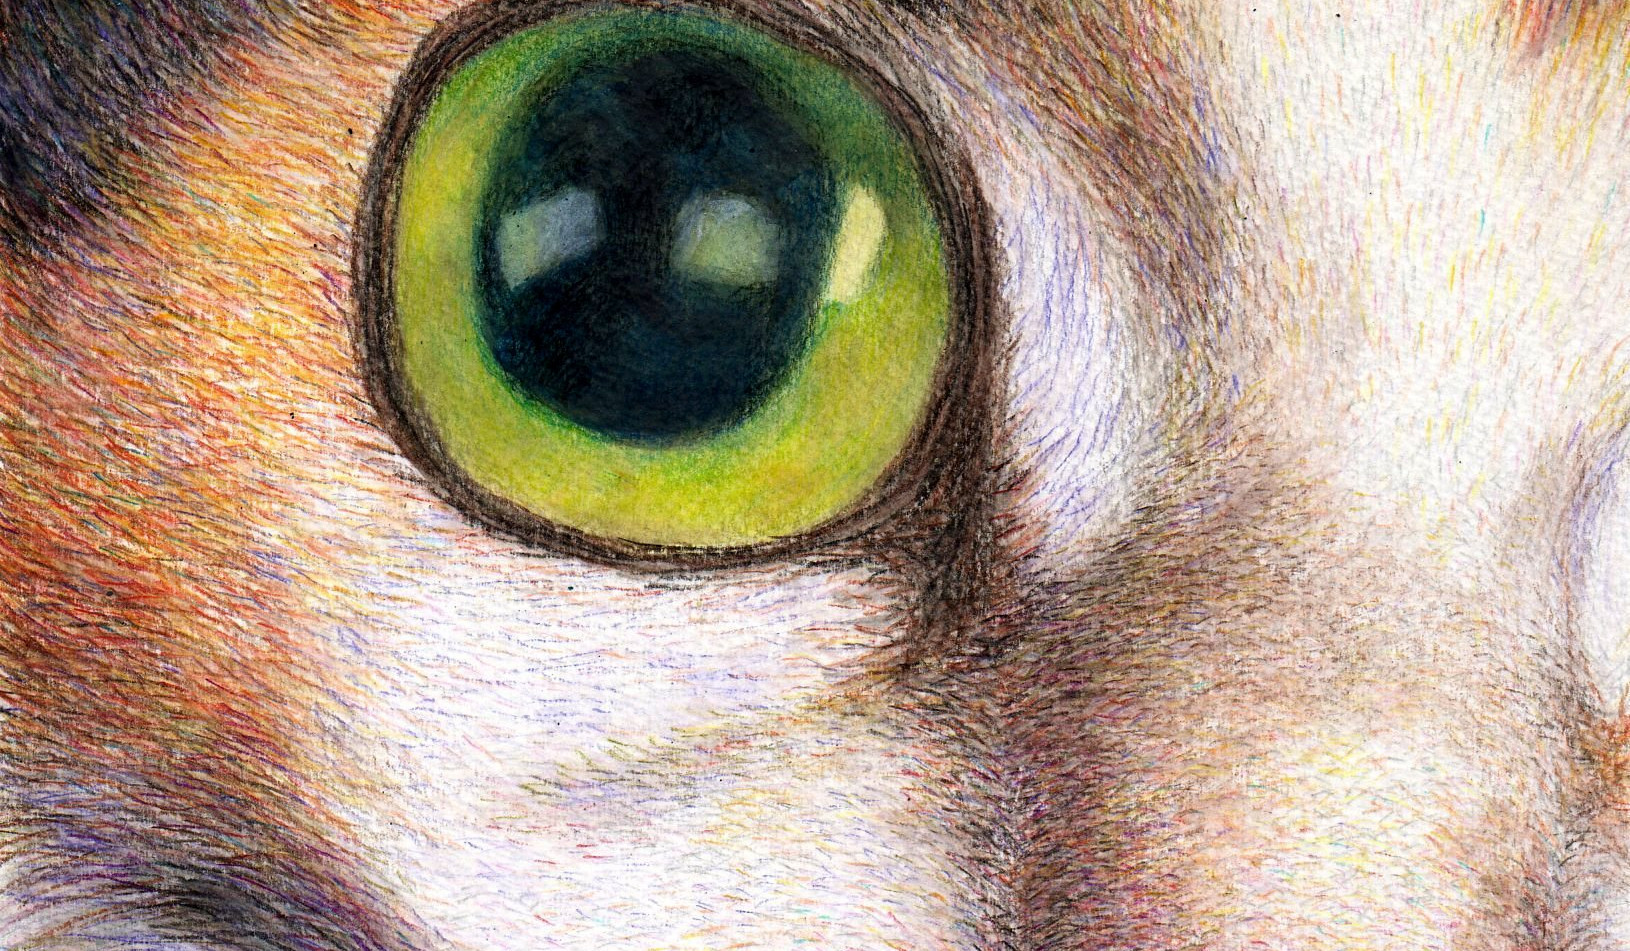 520-a cool calico cat face drawing